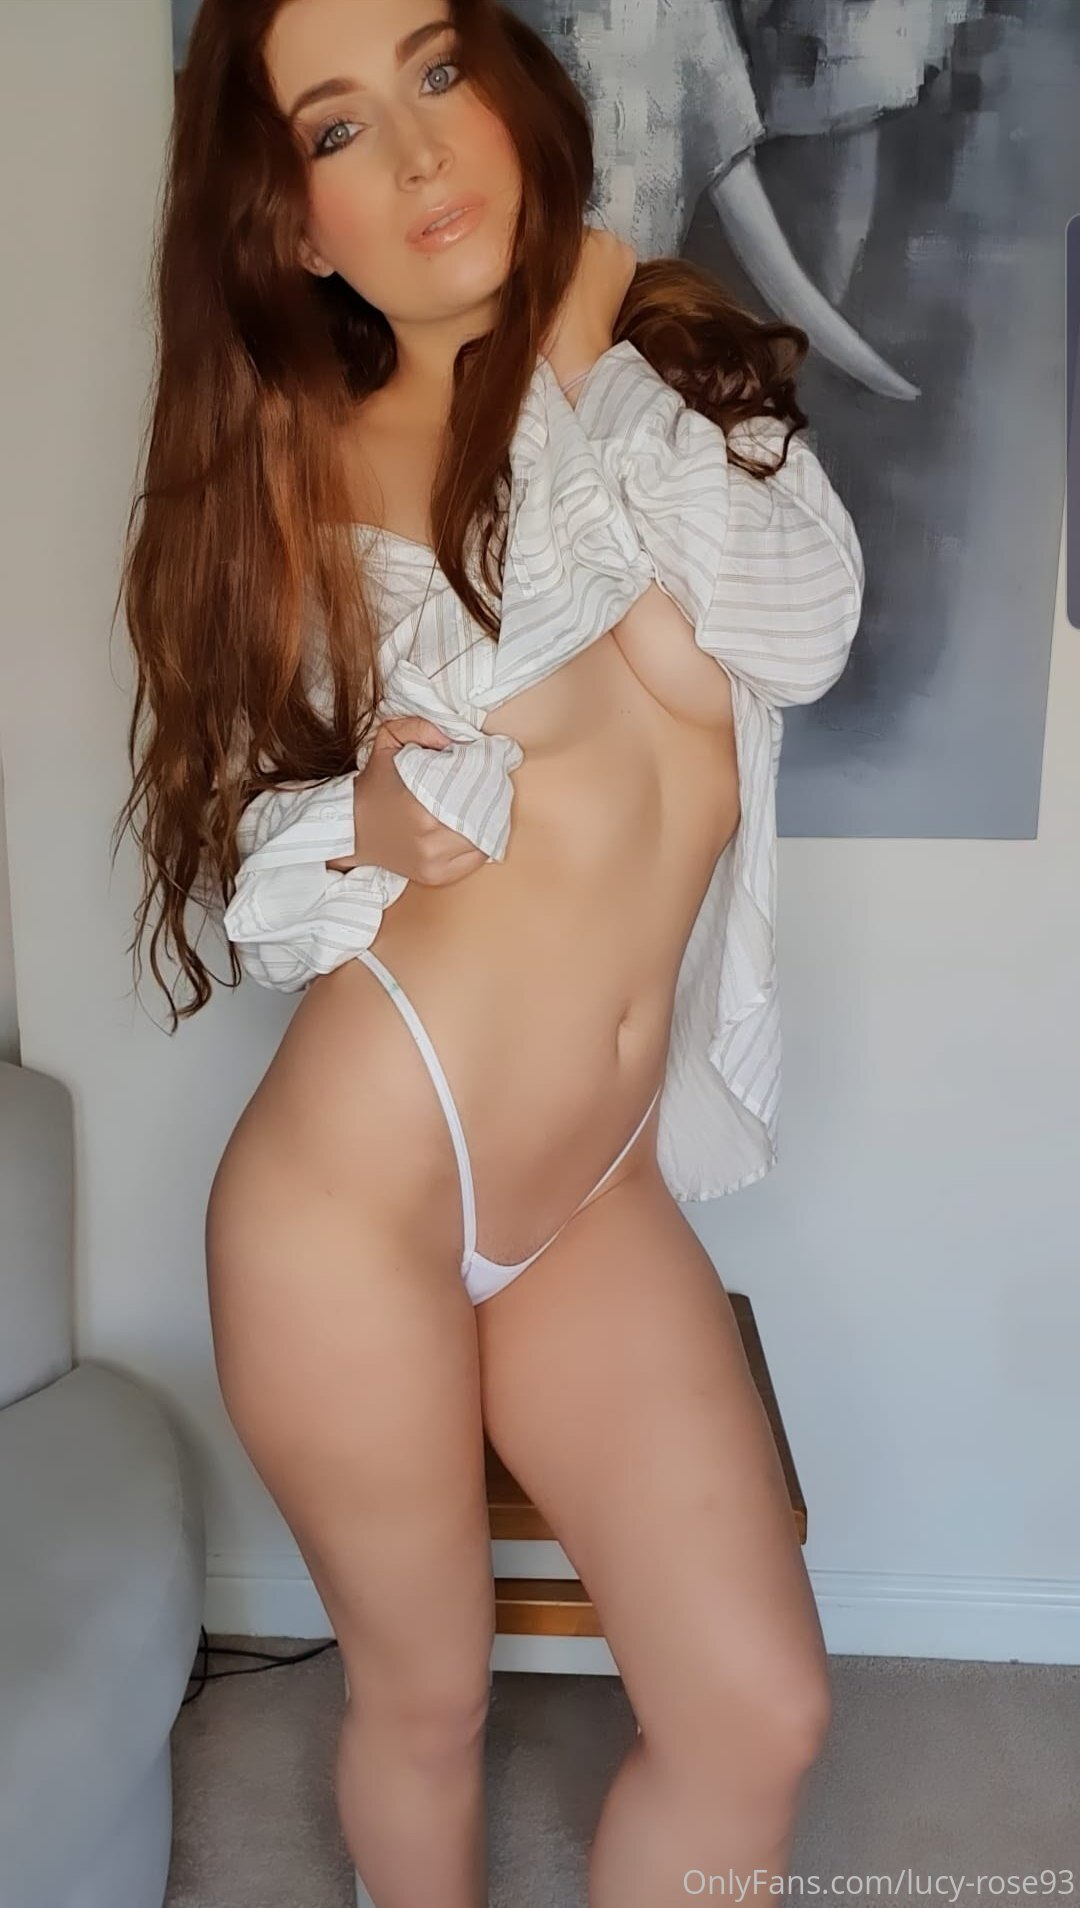 Lucy Rose, Lucy Rose93, Onlyfans 0250